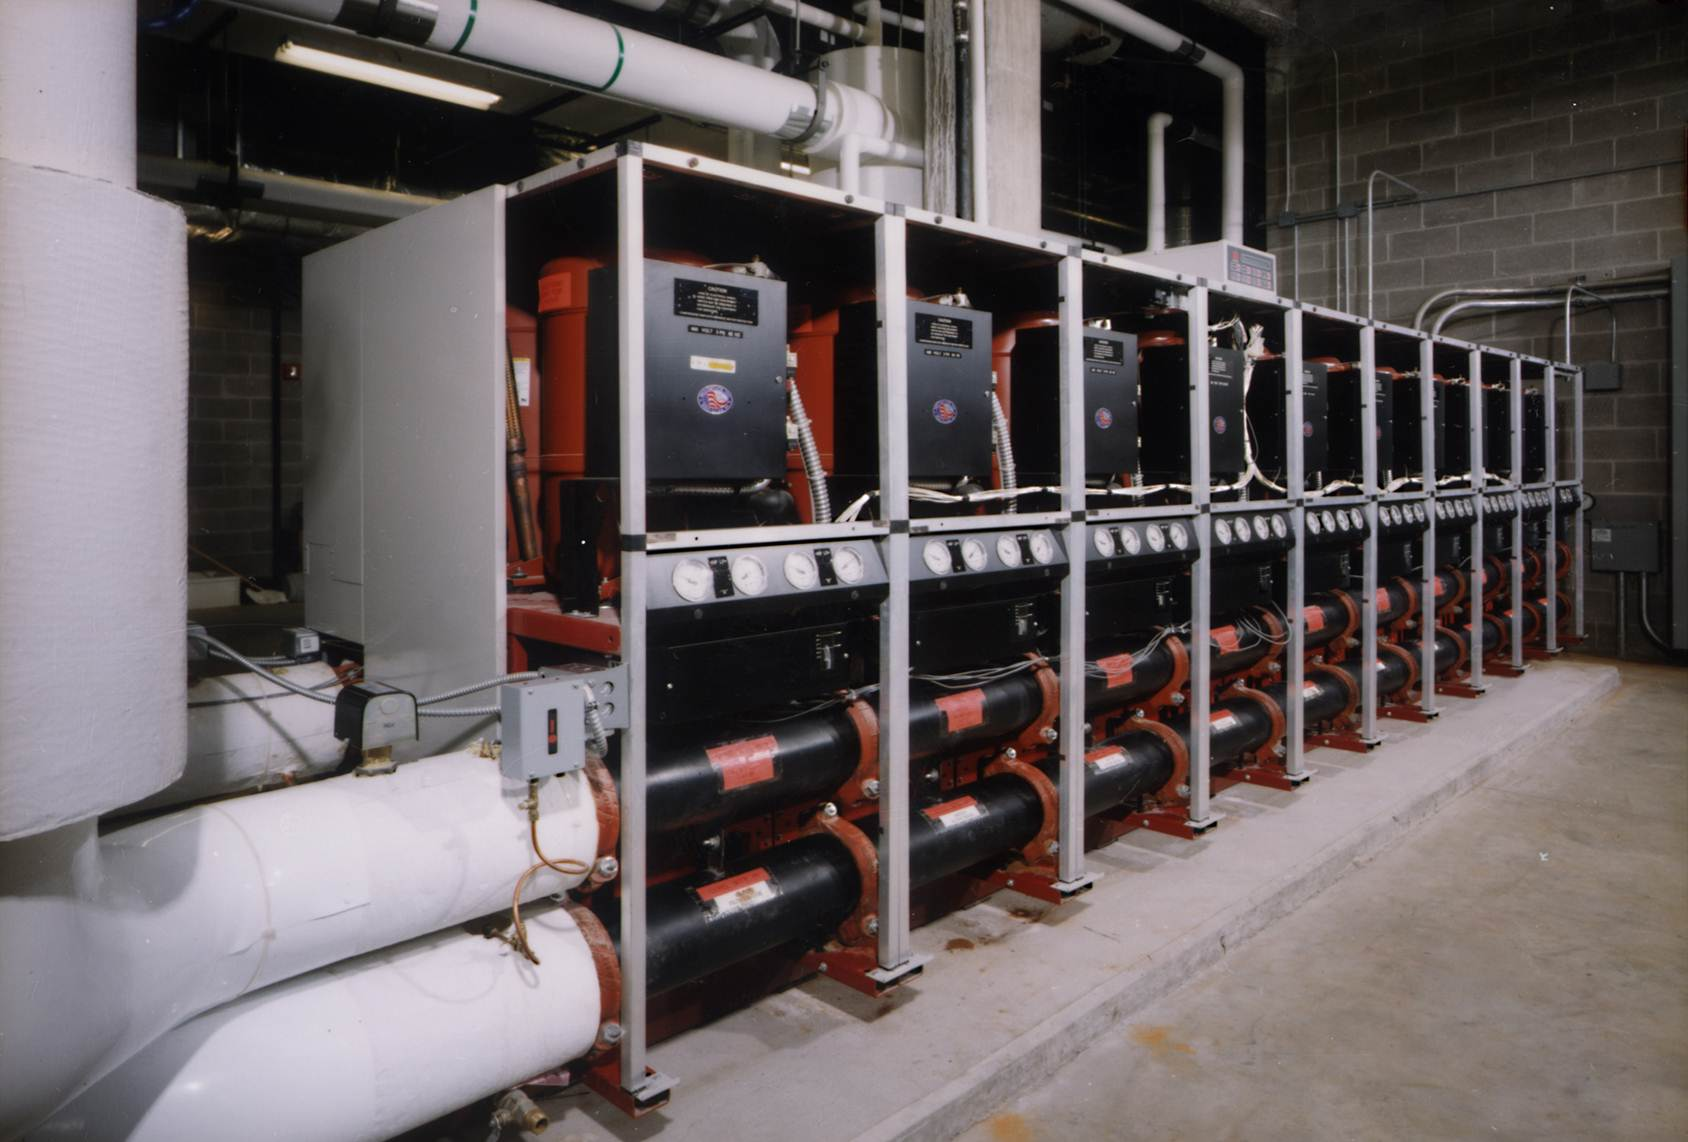 Modular Wiring System Electrical Diagram What Is A Multistack Chiller 33 Systems For Receptacles